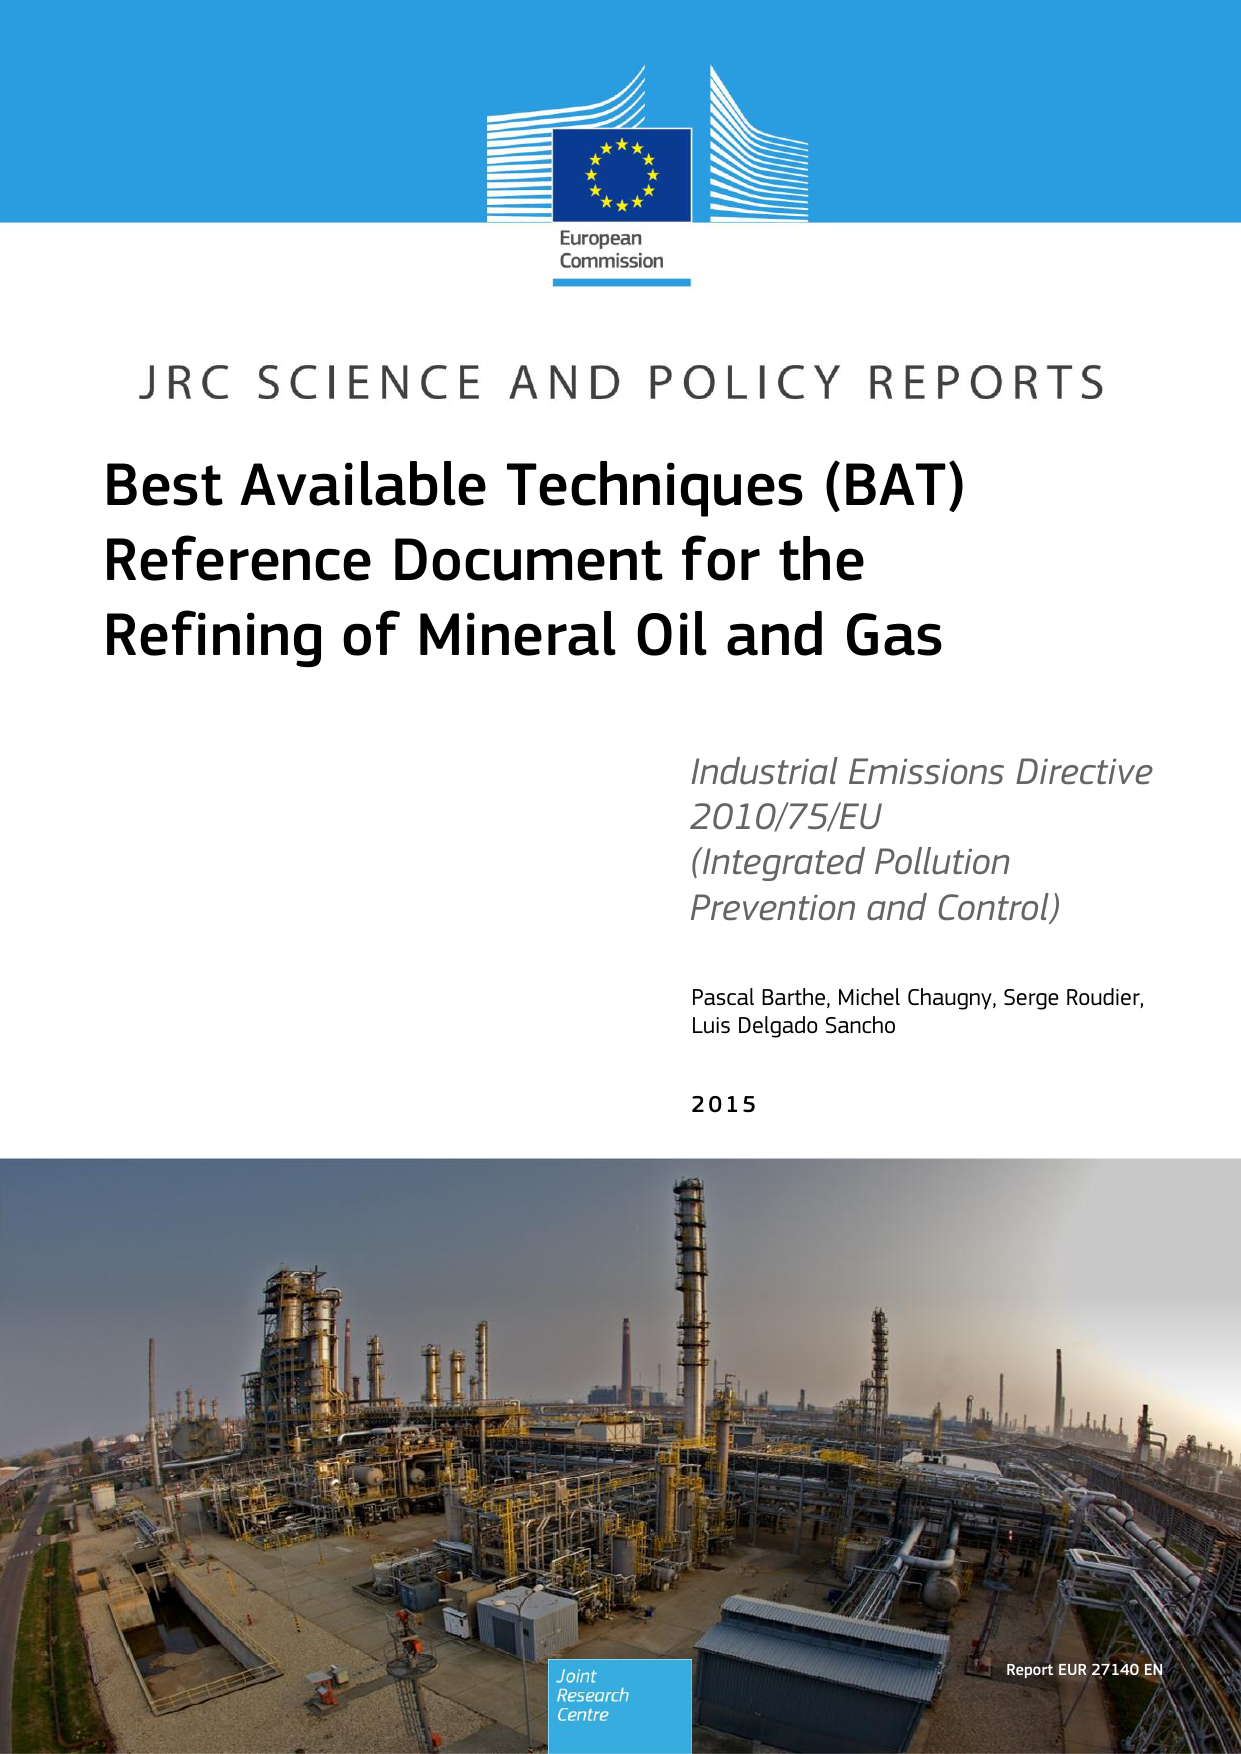 BAT) Reference Document for the Refining of Mineral Oil and Gas